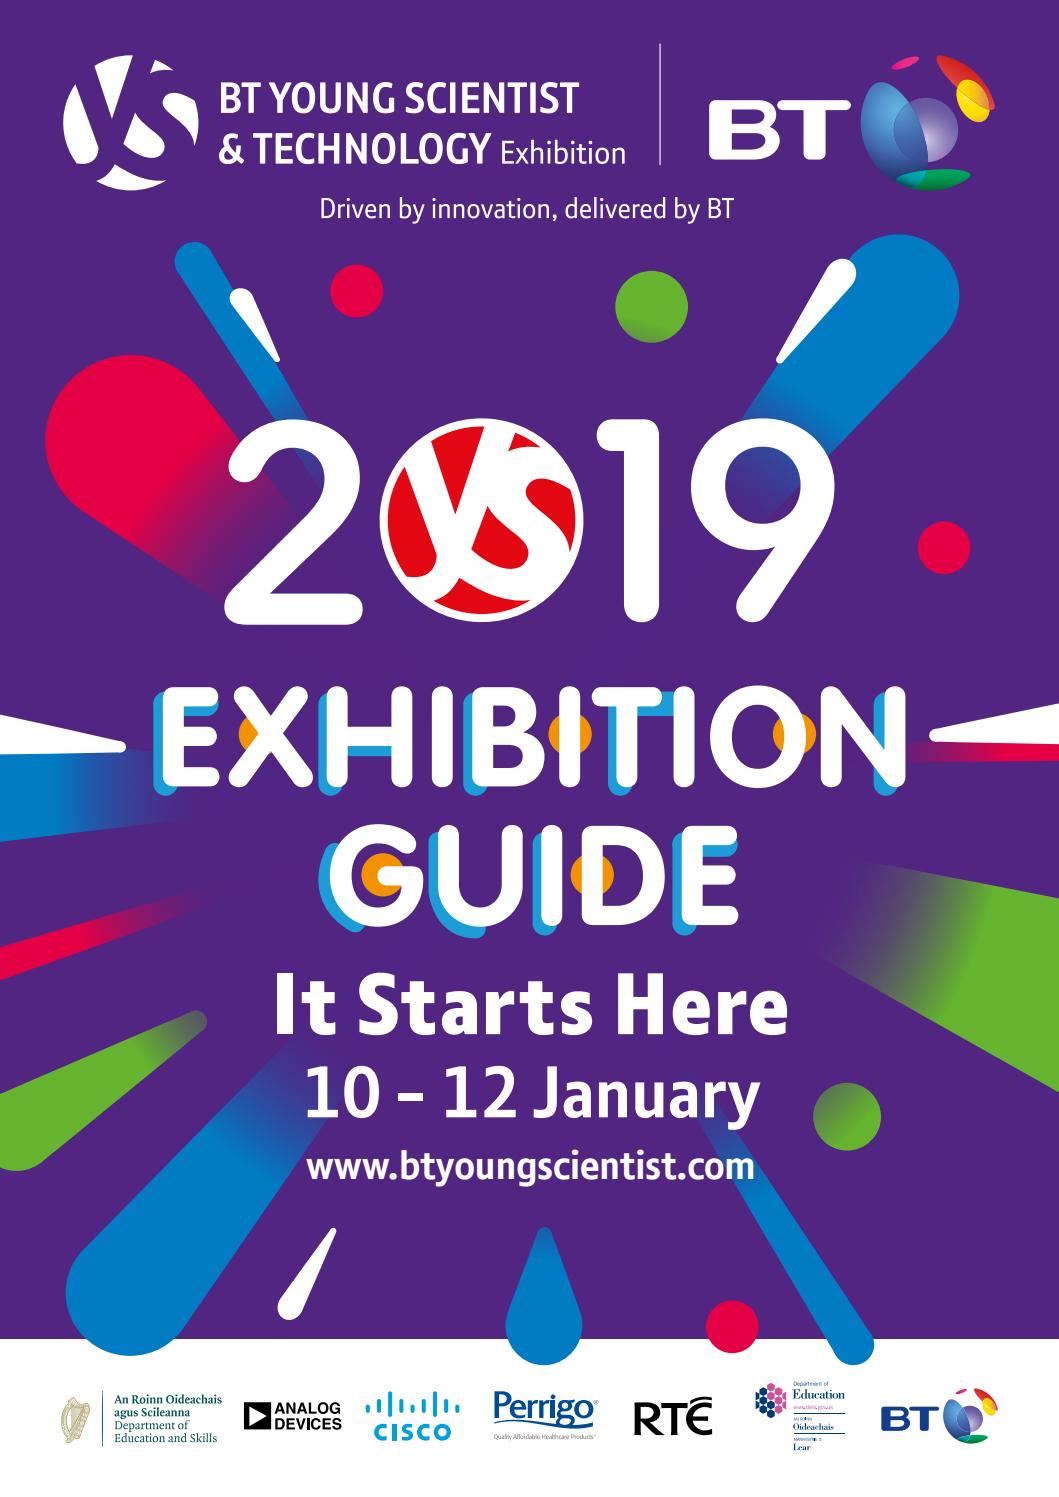 BT Young Scientist & Technology Exhibition 2019 by BT Young